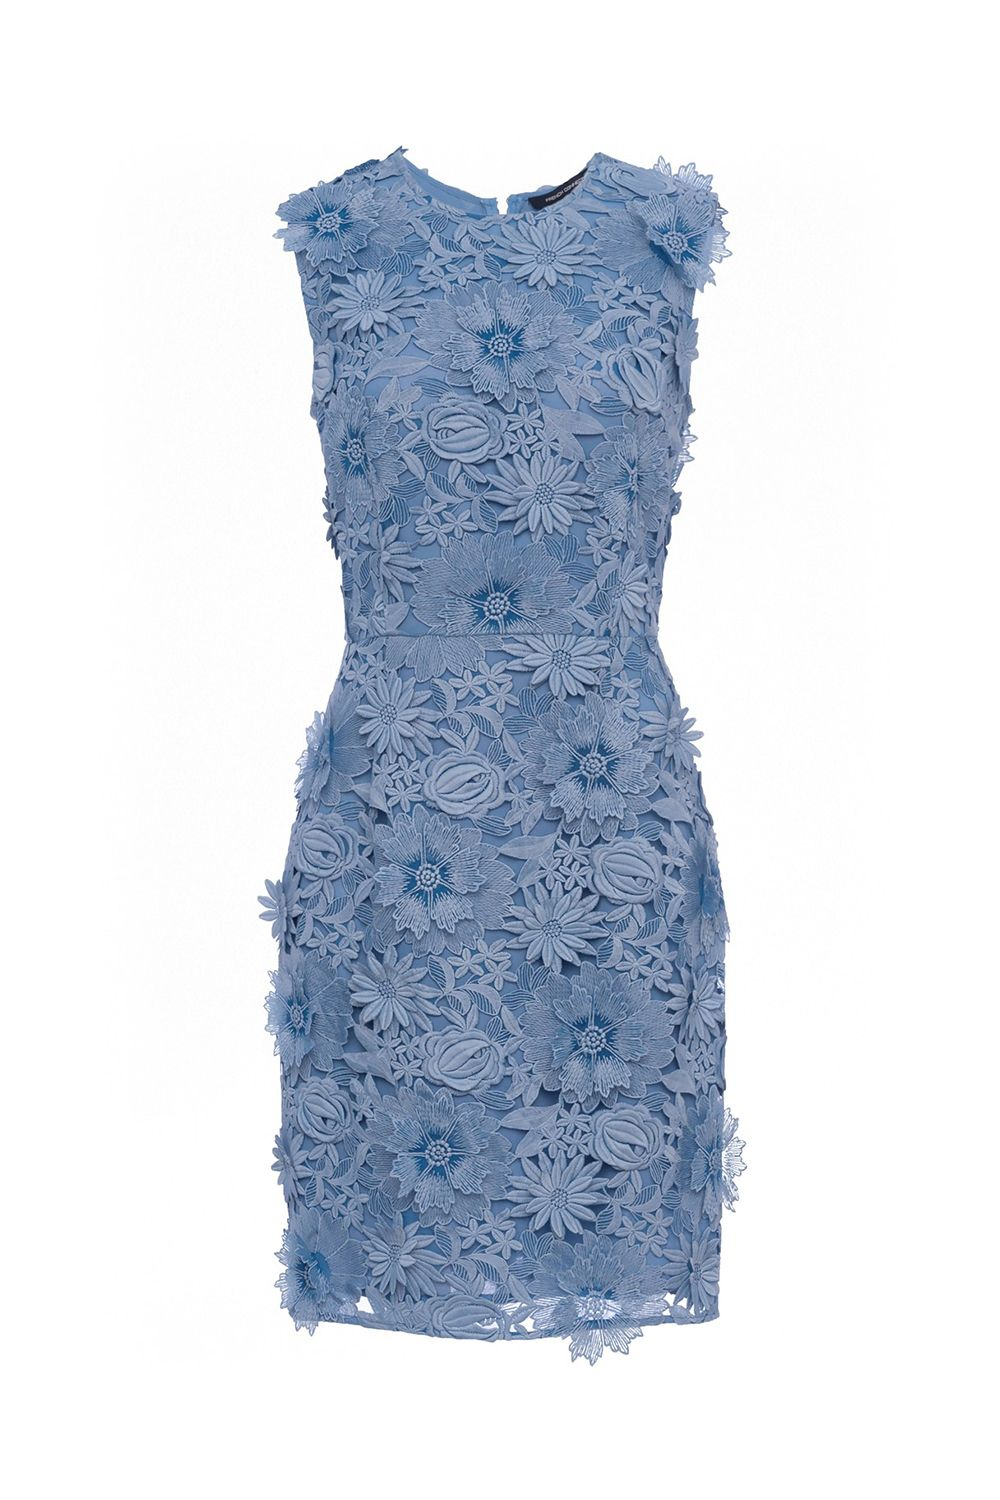 13 Cocktail Dresses Perfect for Weddings - Wedding Guest Cocktail ...